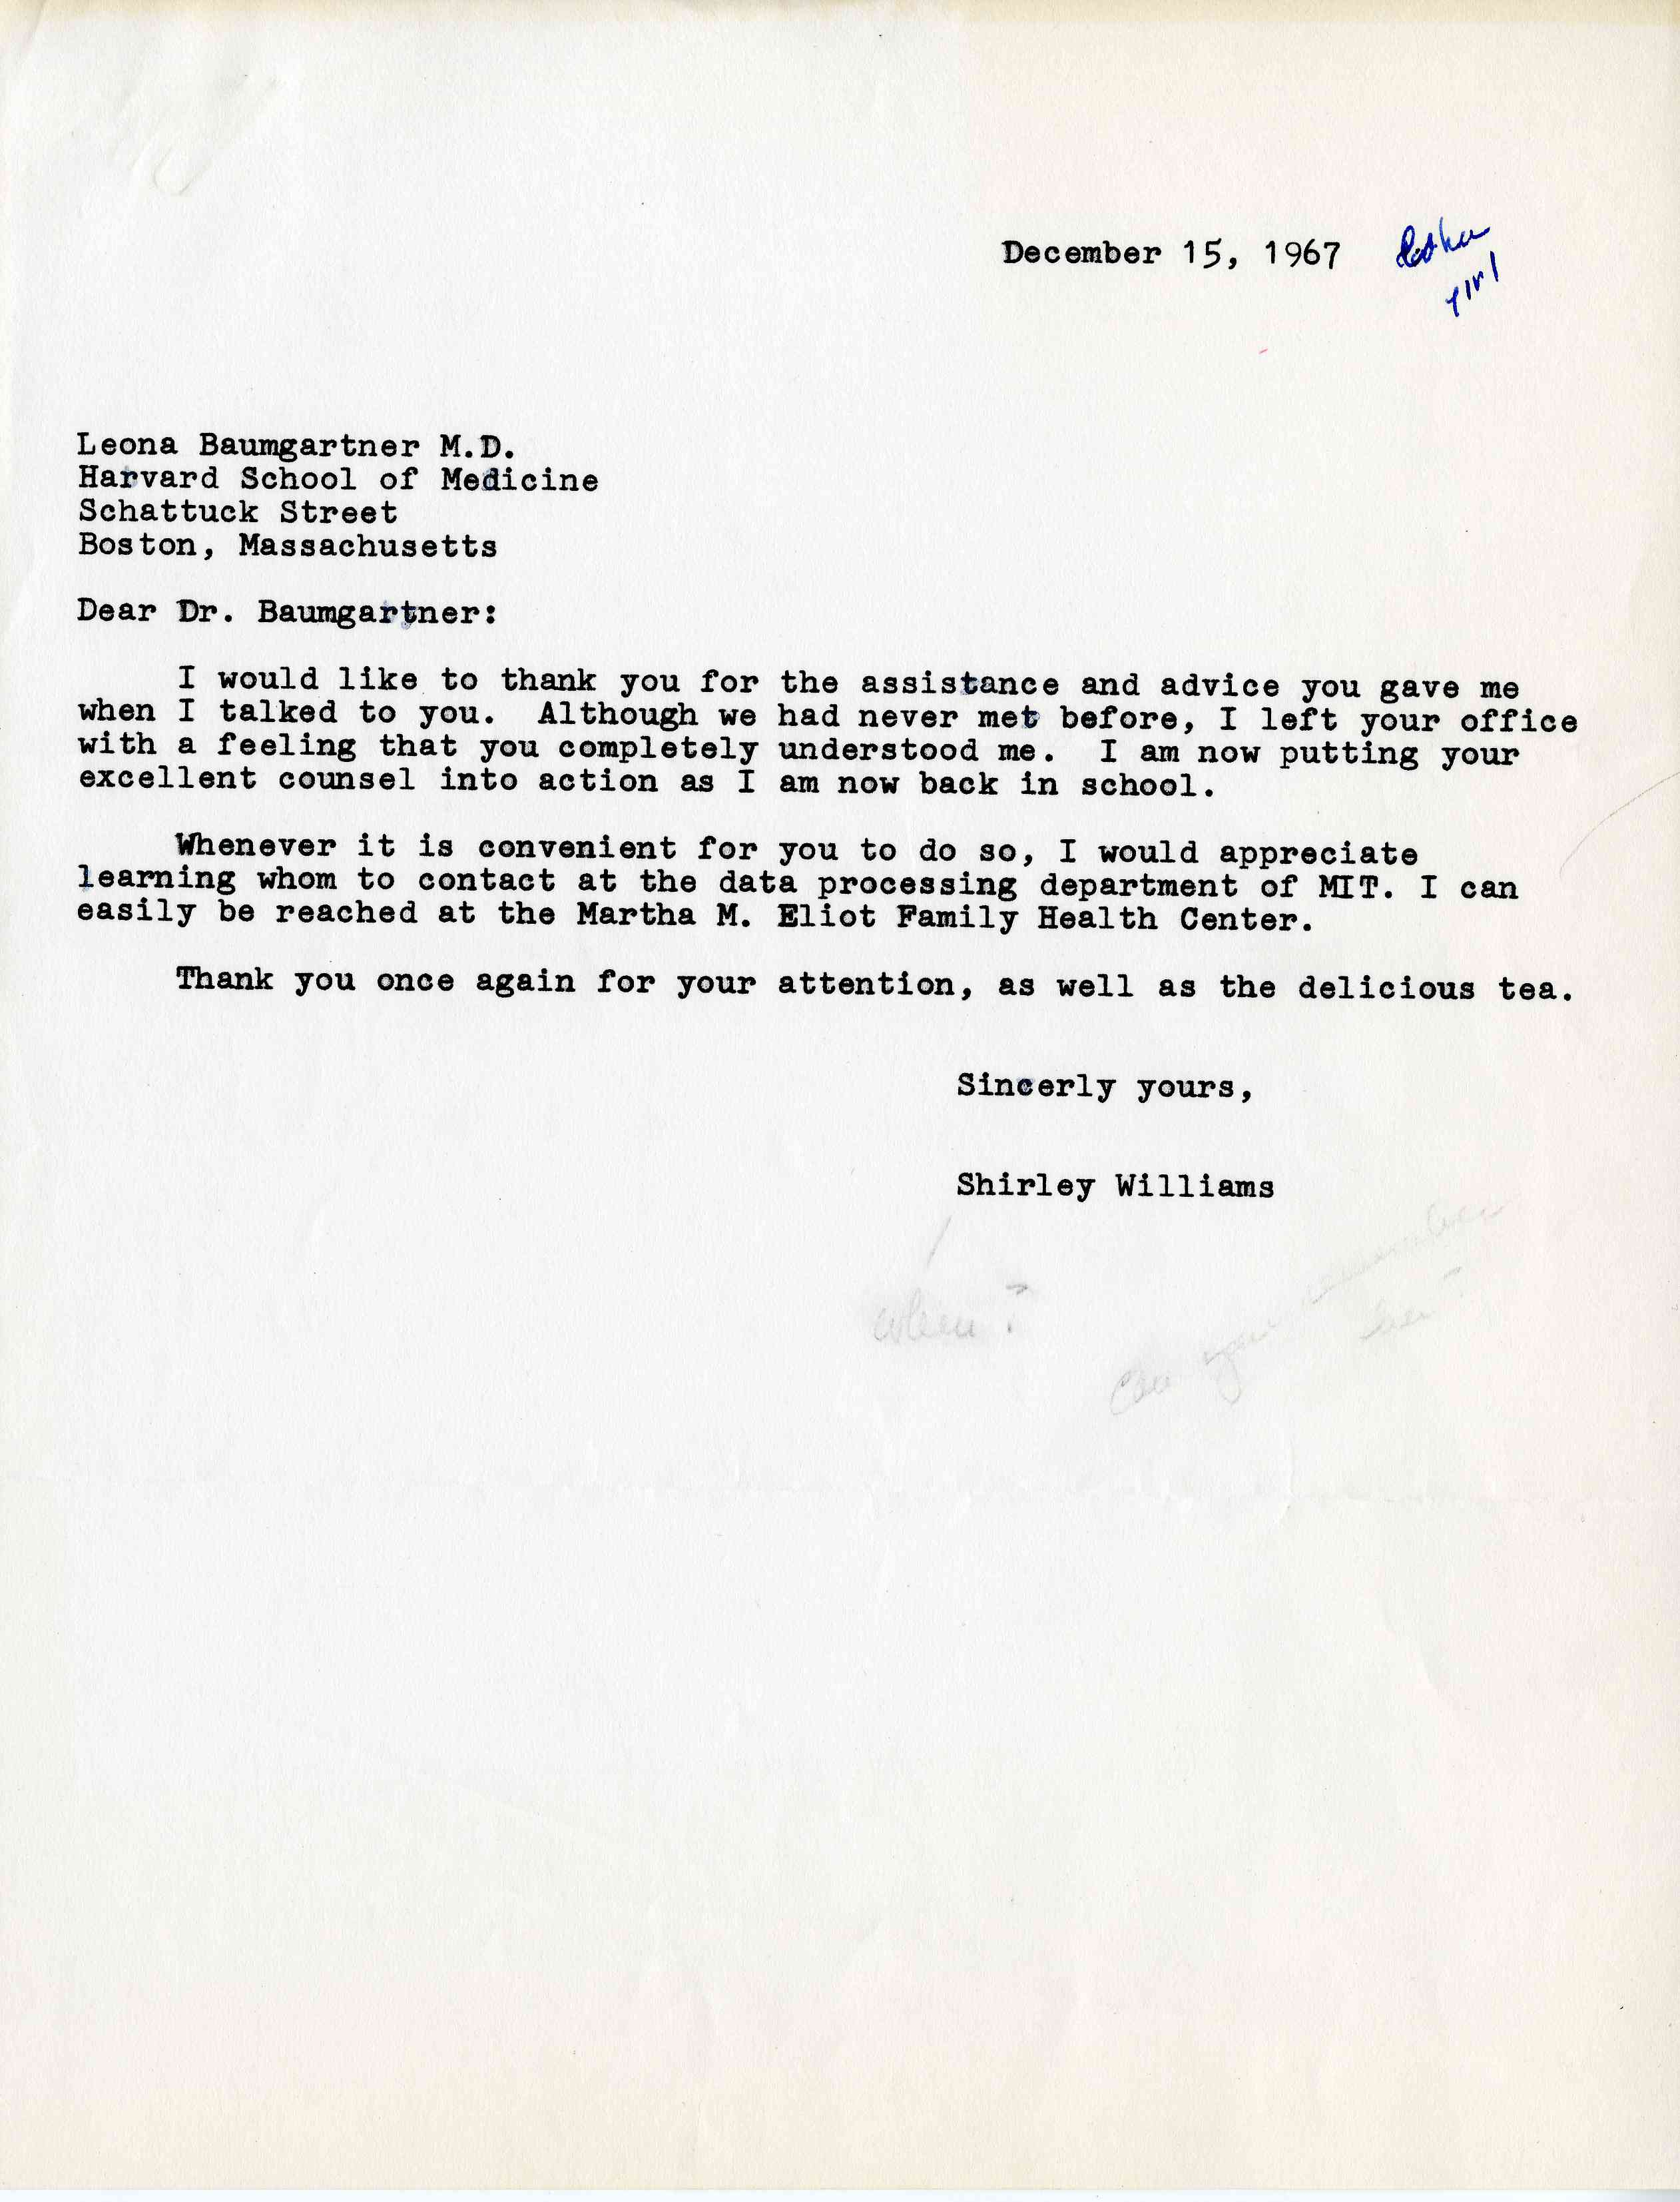 Letter From Shirley Williams To Leona Baumgartner Md Onview